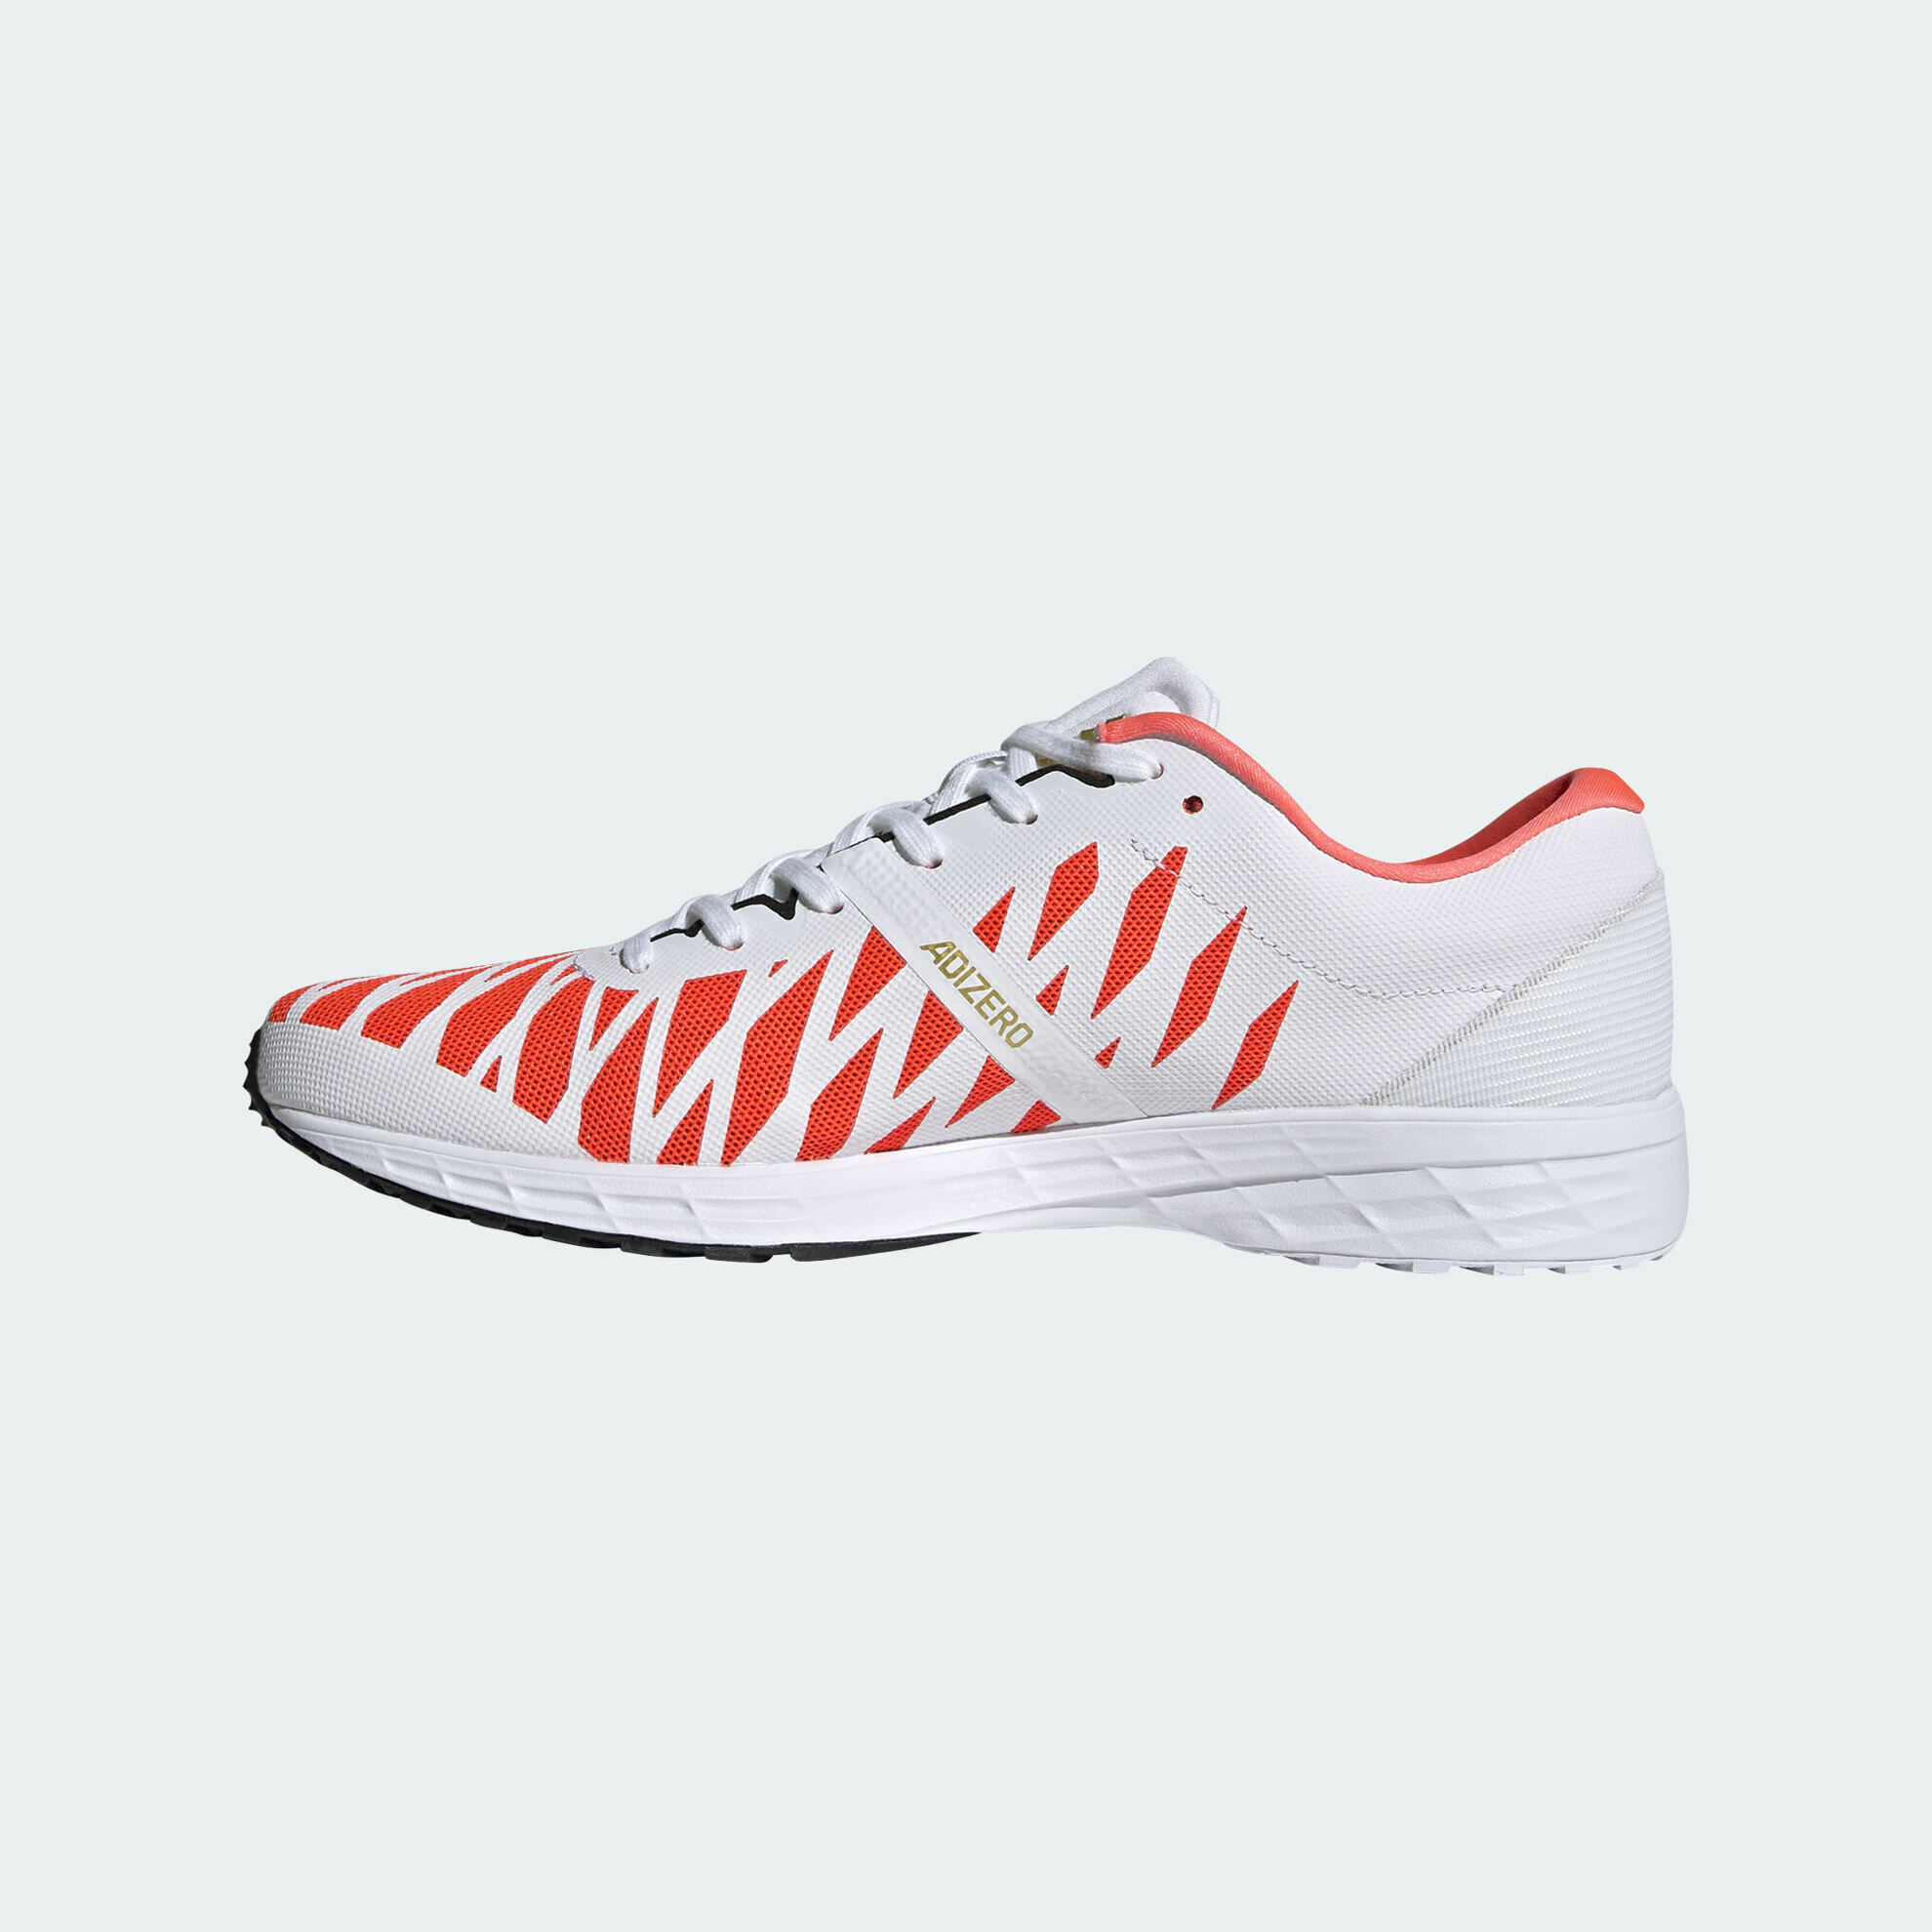 0079751_adizero-rc-3-tokyo-shoes_fy4084_side-medial-center-view[1]